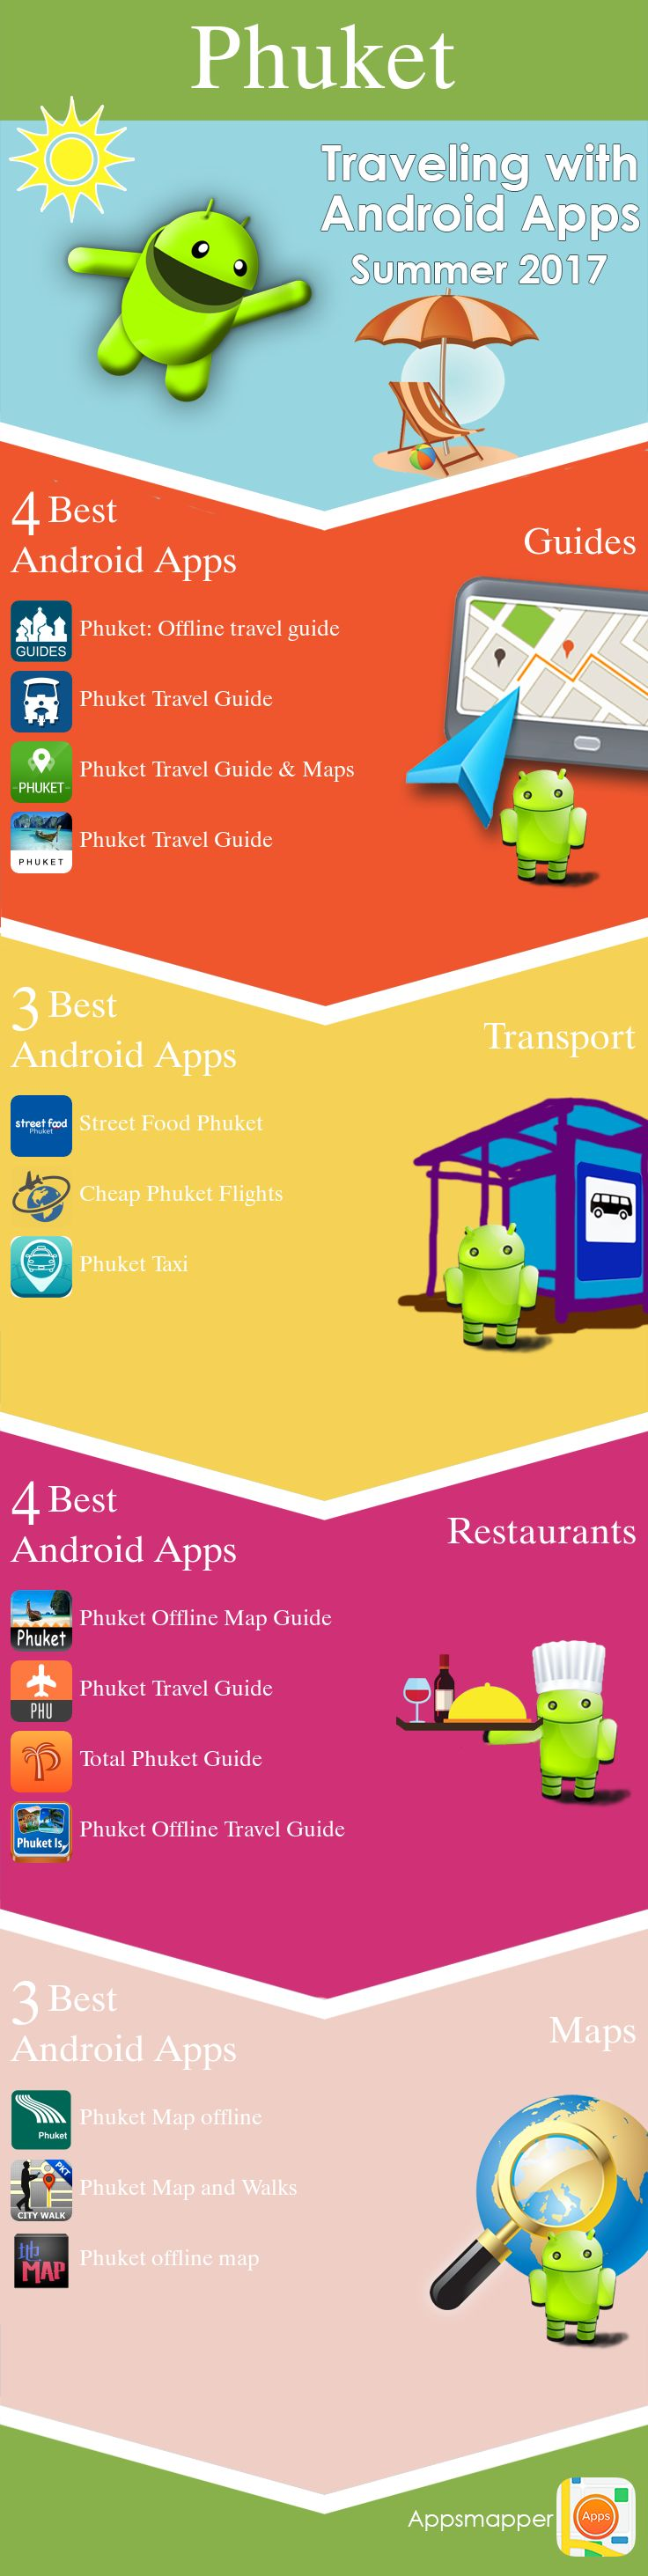 Phuket Android apps: Travel Guides, Maps, Transportation, Biking, Museums, Parking, Sport and apps for Students.